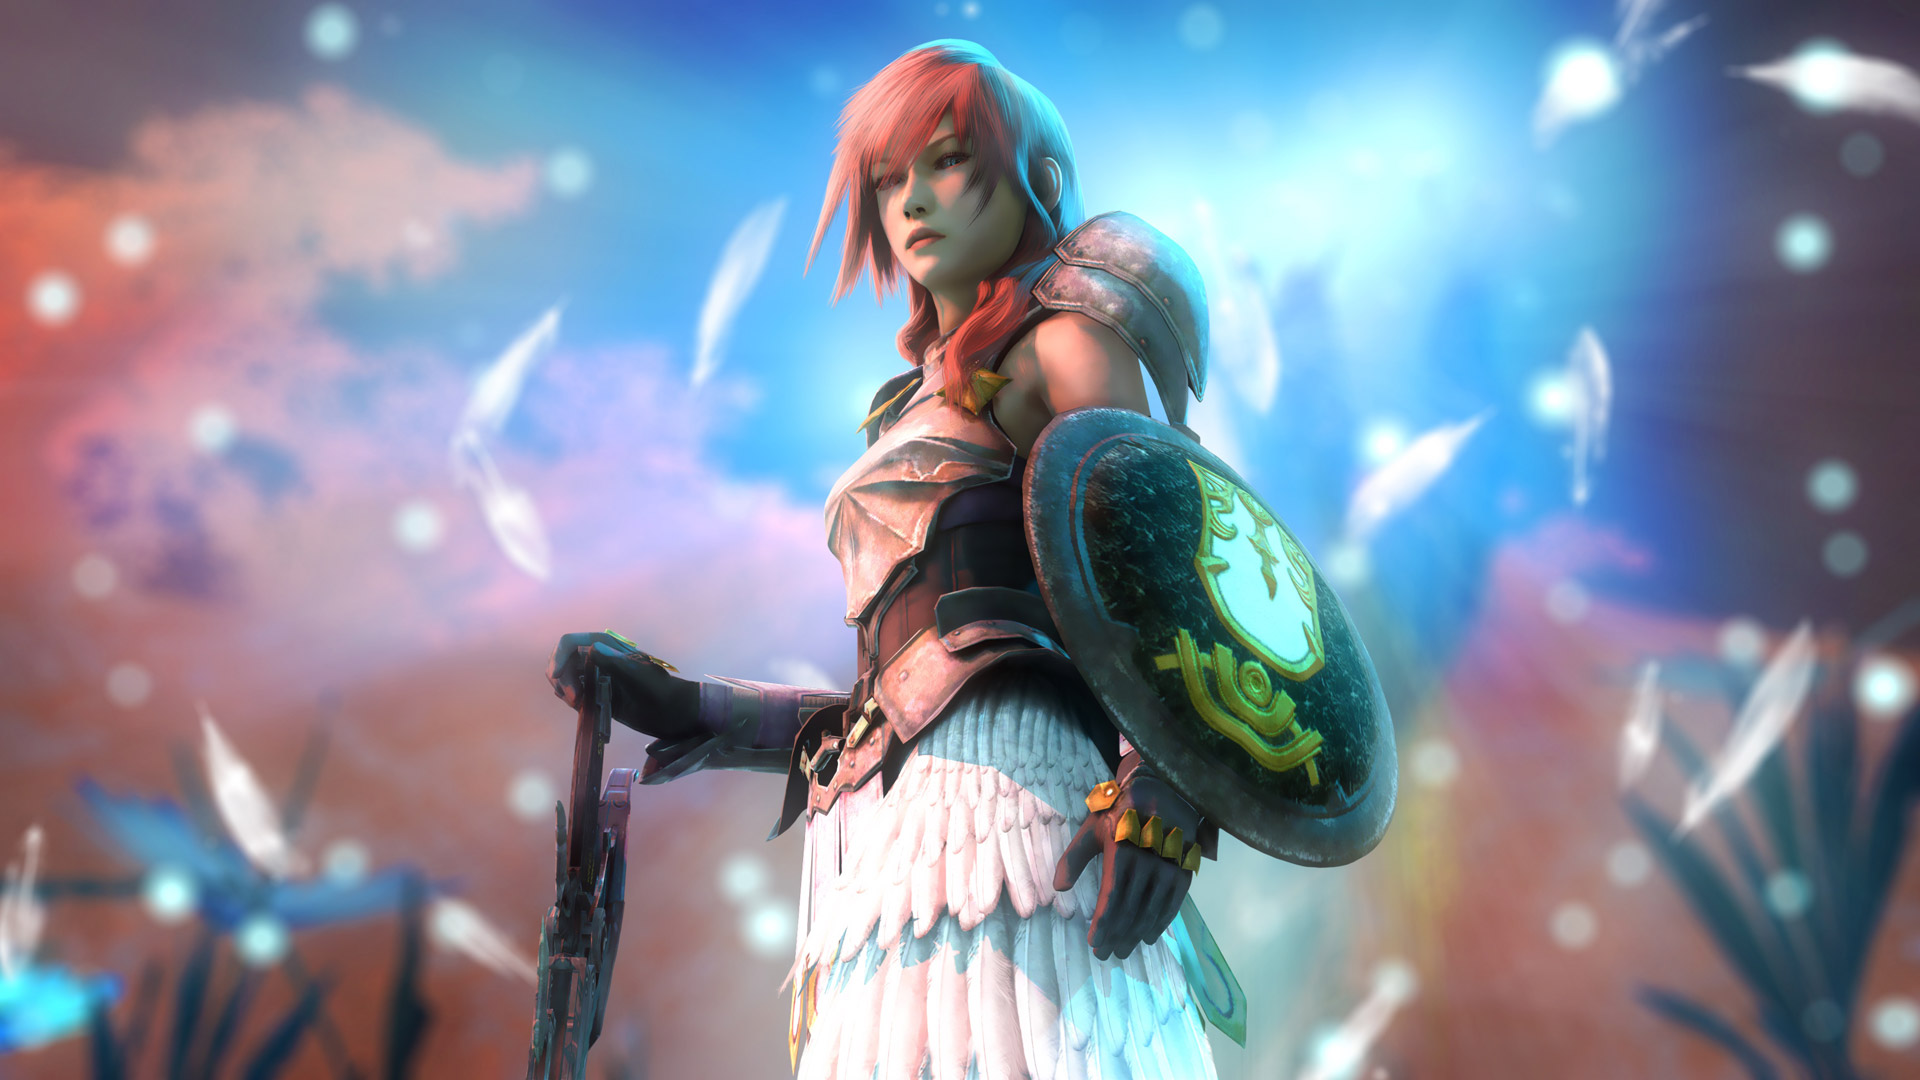 Free Final Fantasy XIII Wallpaper in 1920x1080